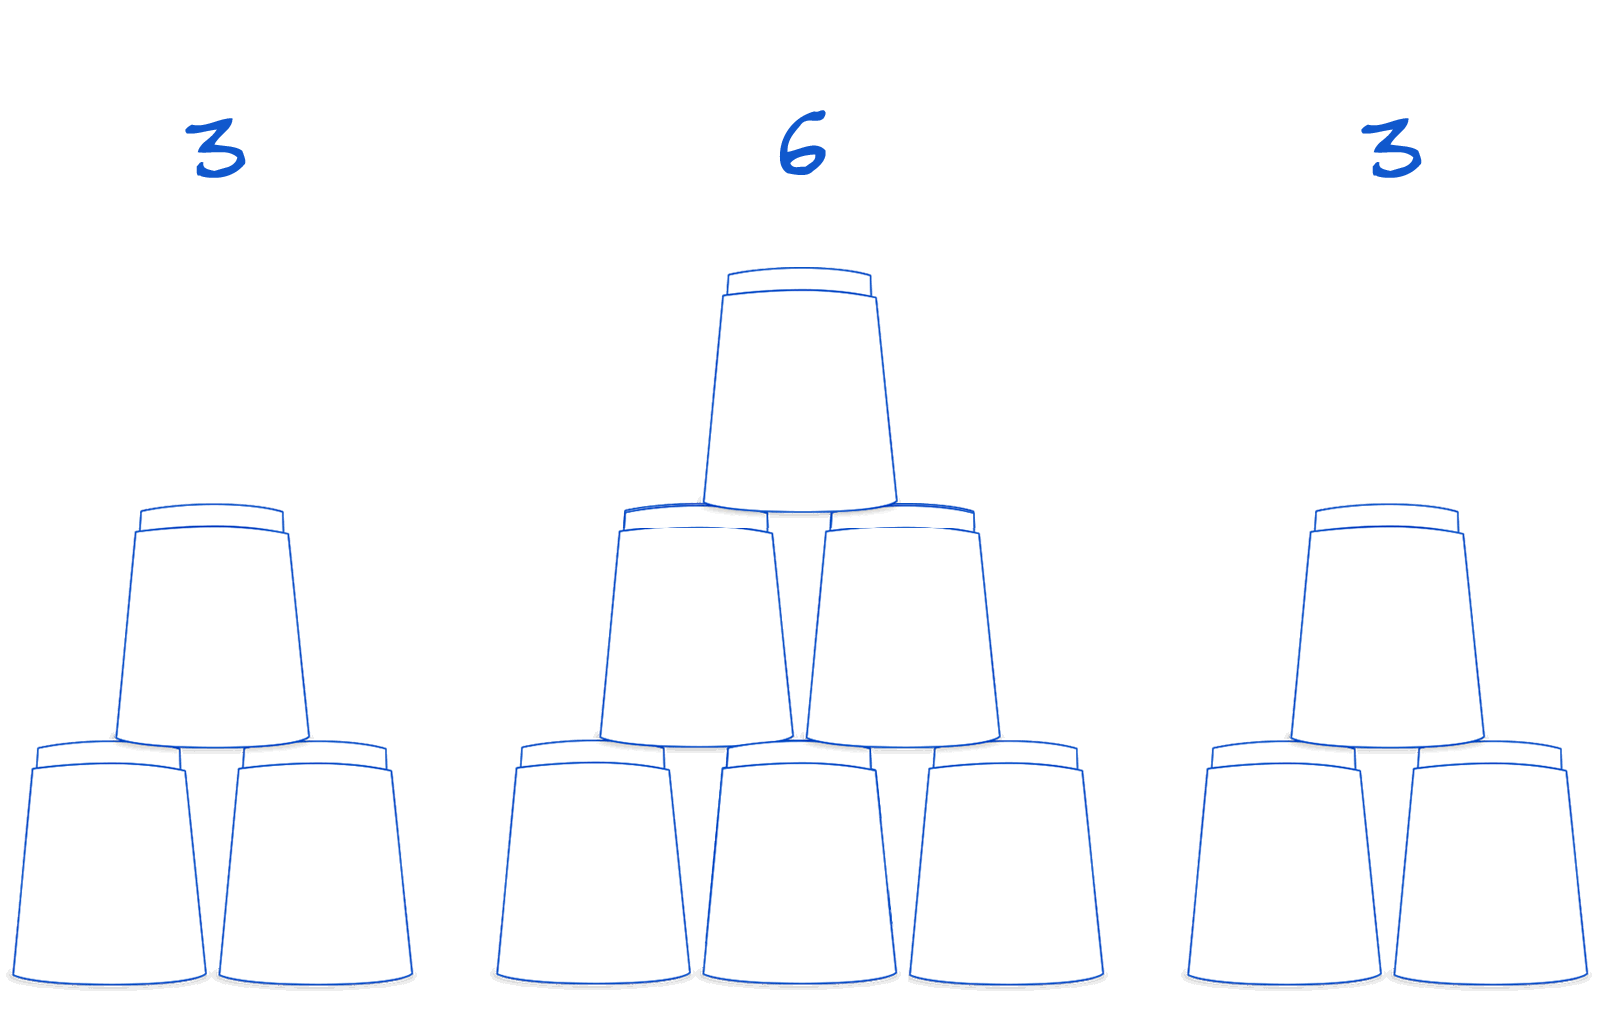 3-6-3 formation